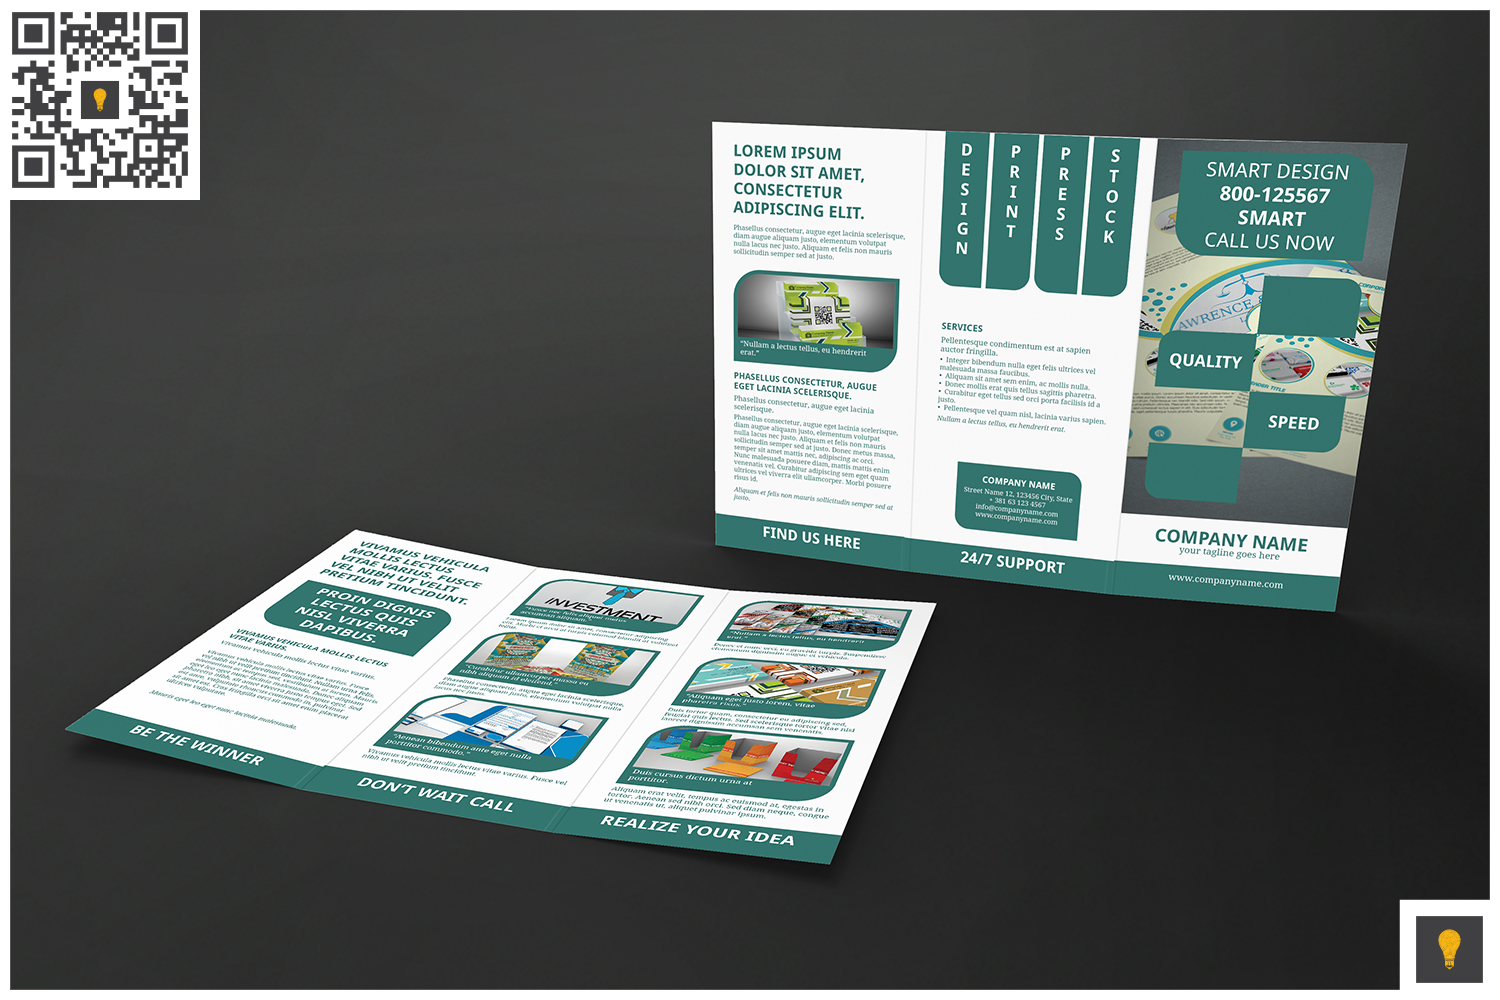 Corporate Rounded Geometric Trifold example image 5